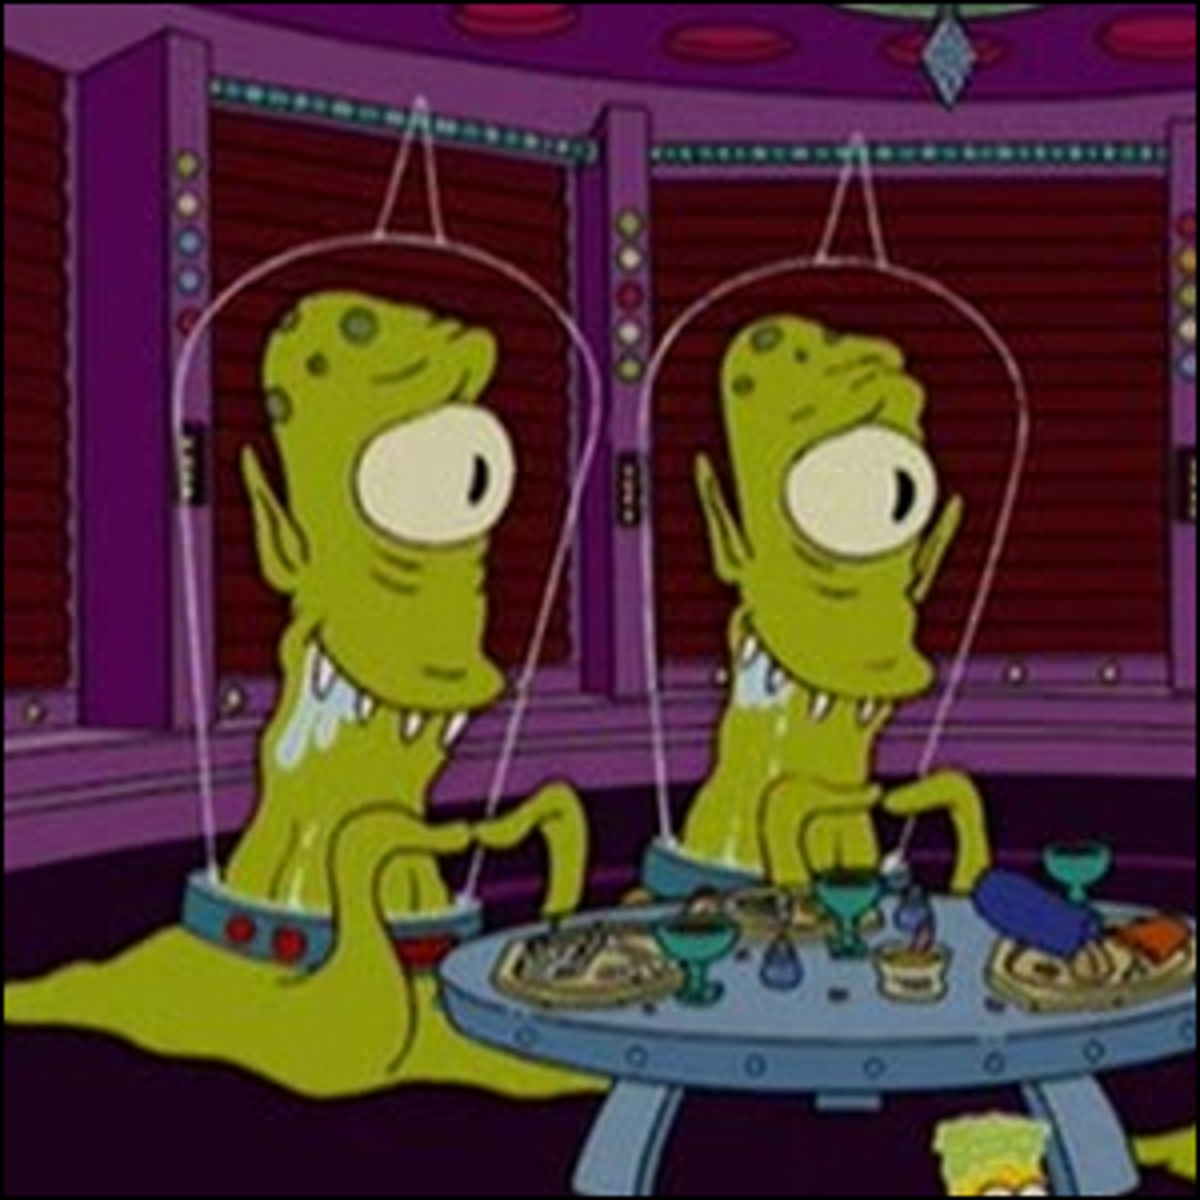 Kang and Kodos, the aliens from The Simpsons' annual Treehouse of Horror episodes.